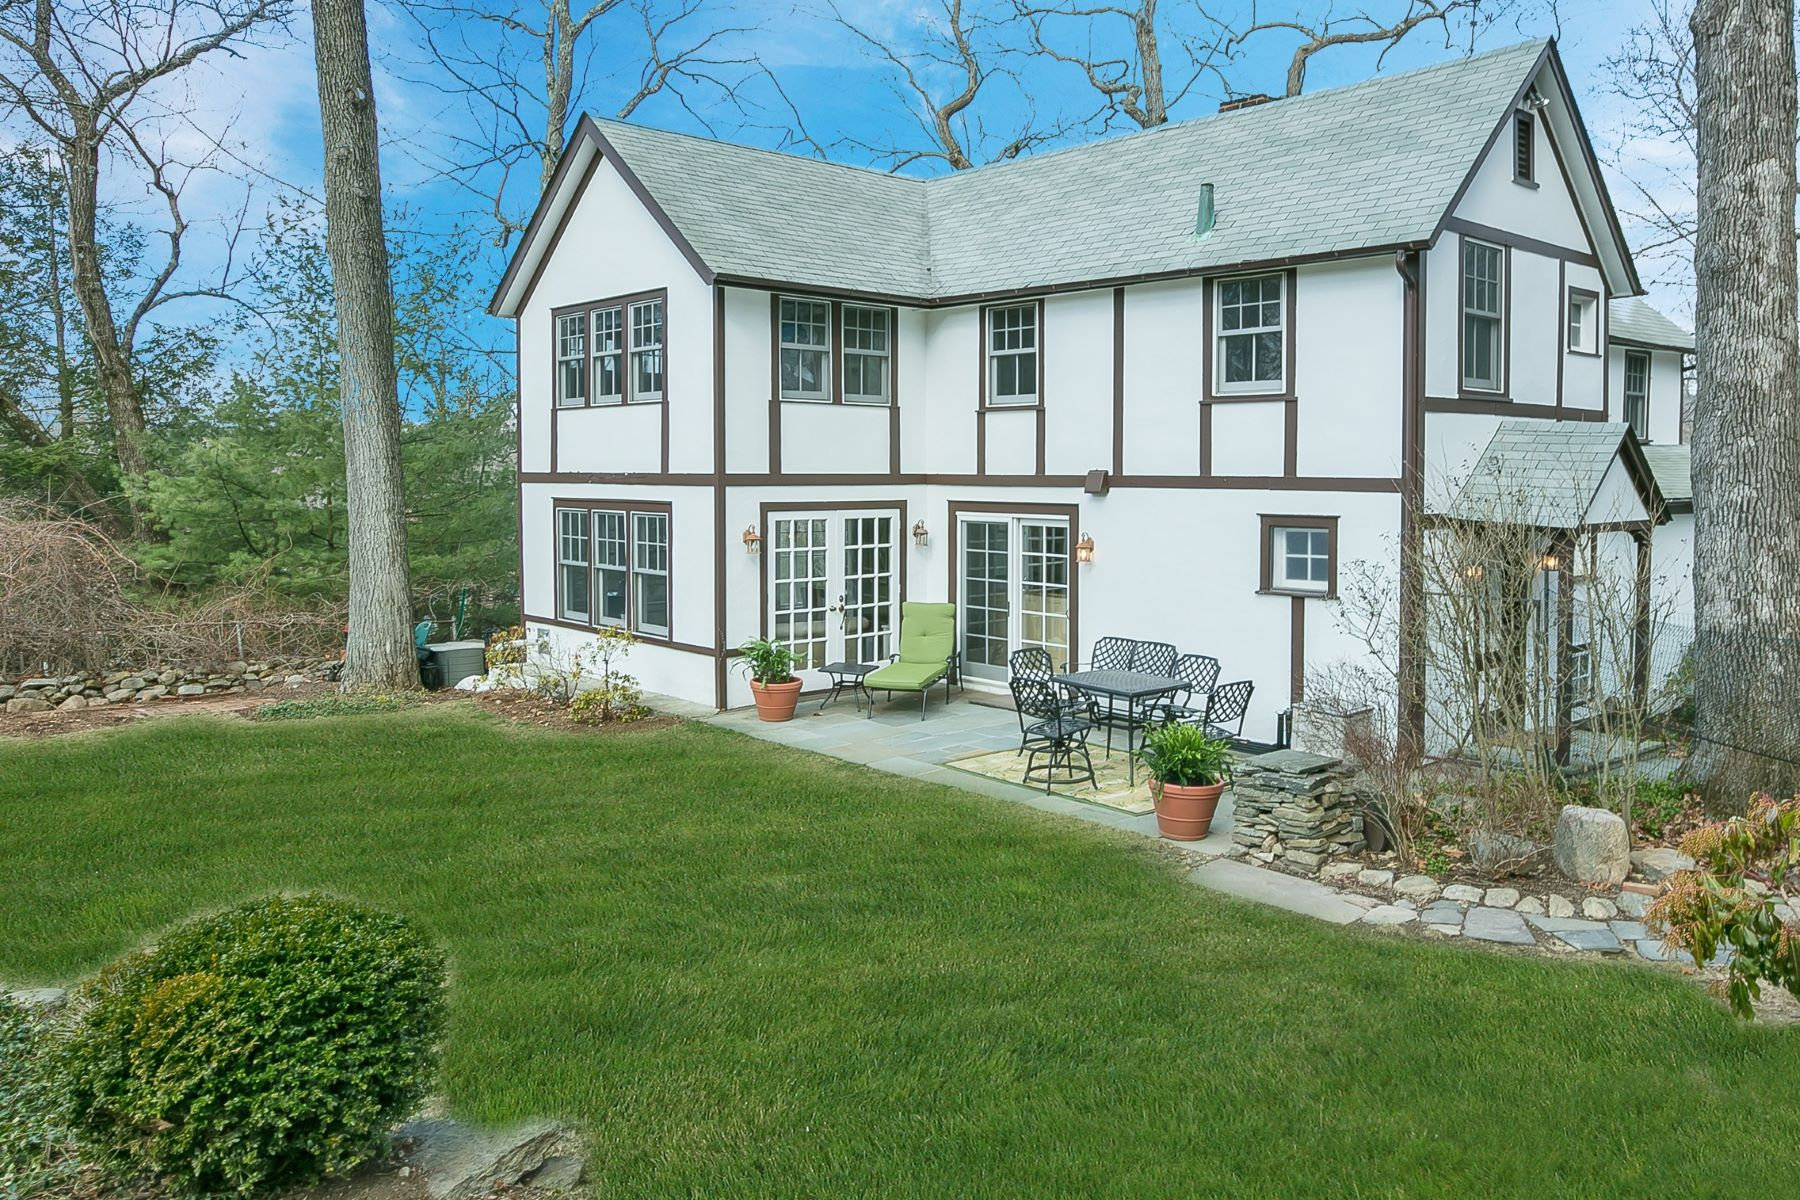 Single Family Home for Sale at English Cottage 2 Stable Road Tuxedo Park, New York 10987 United States